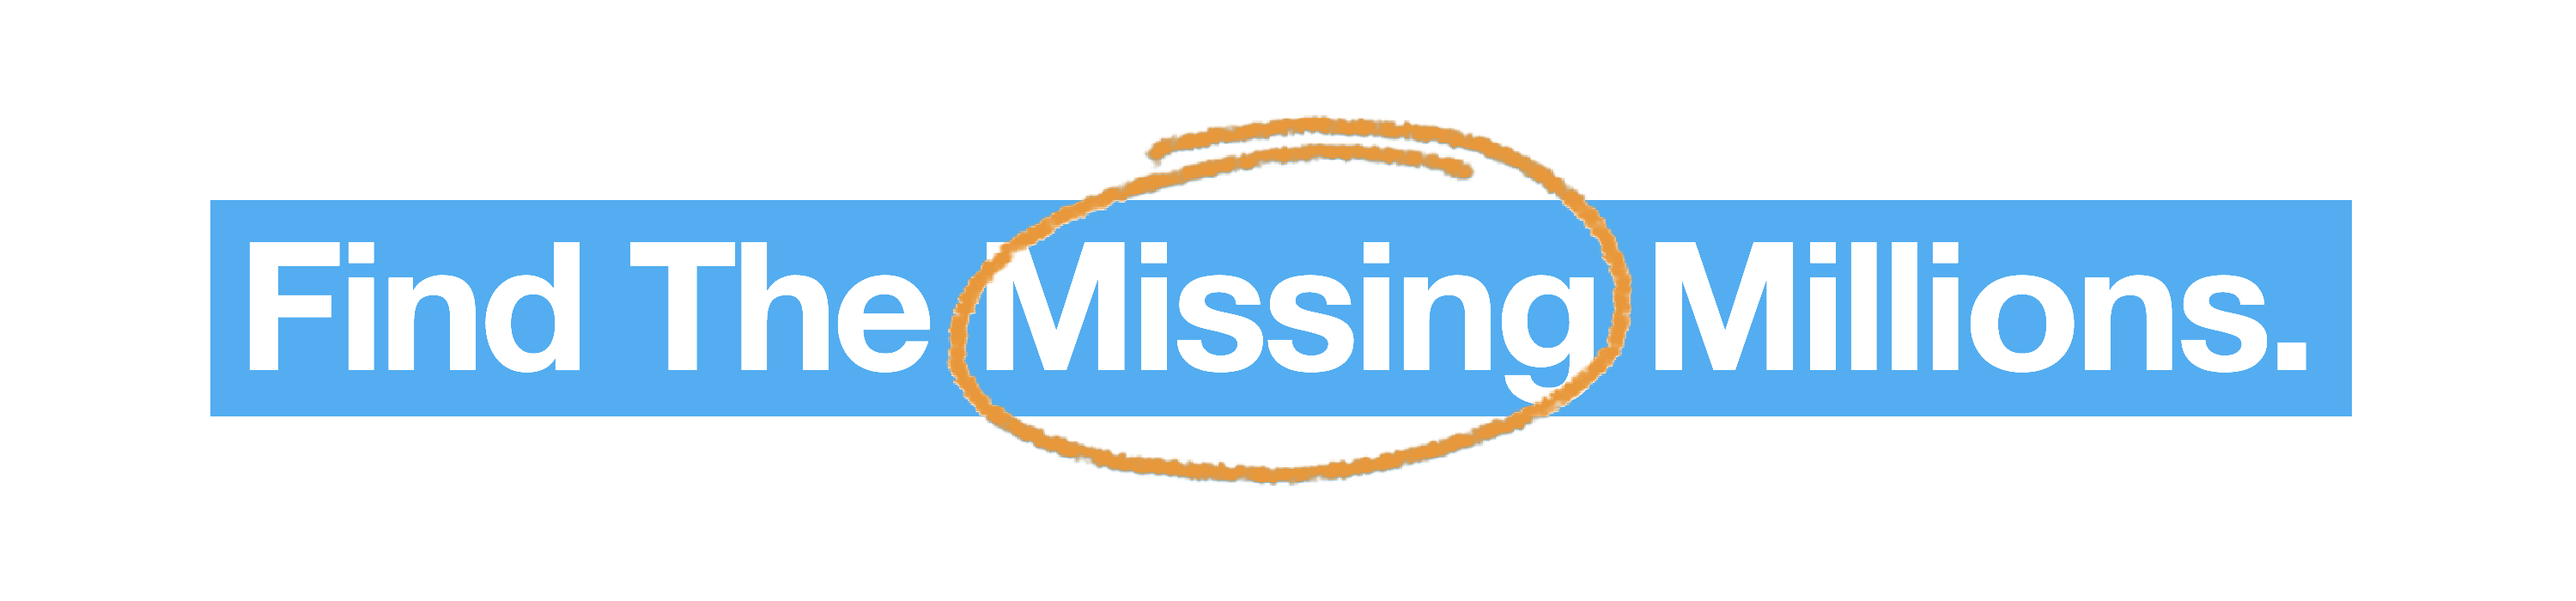 "Find the Missing Millions Banner with ""Missing"" circled in orange."